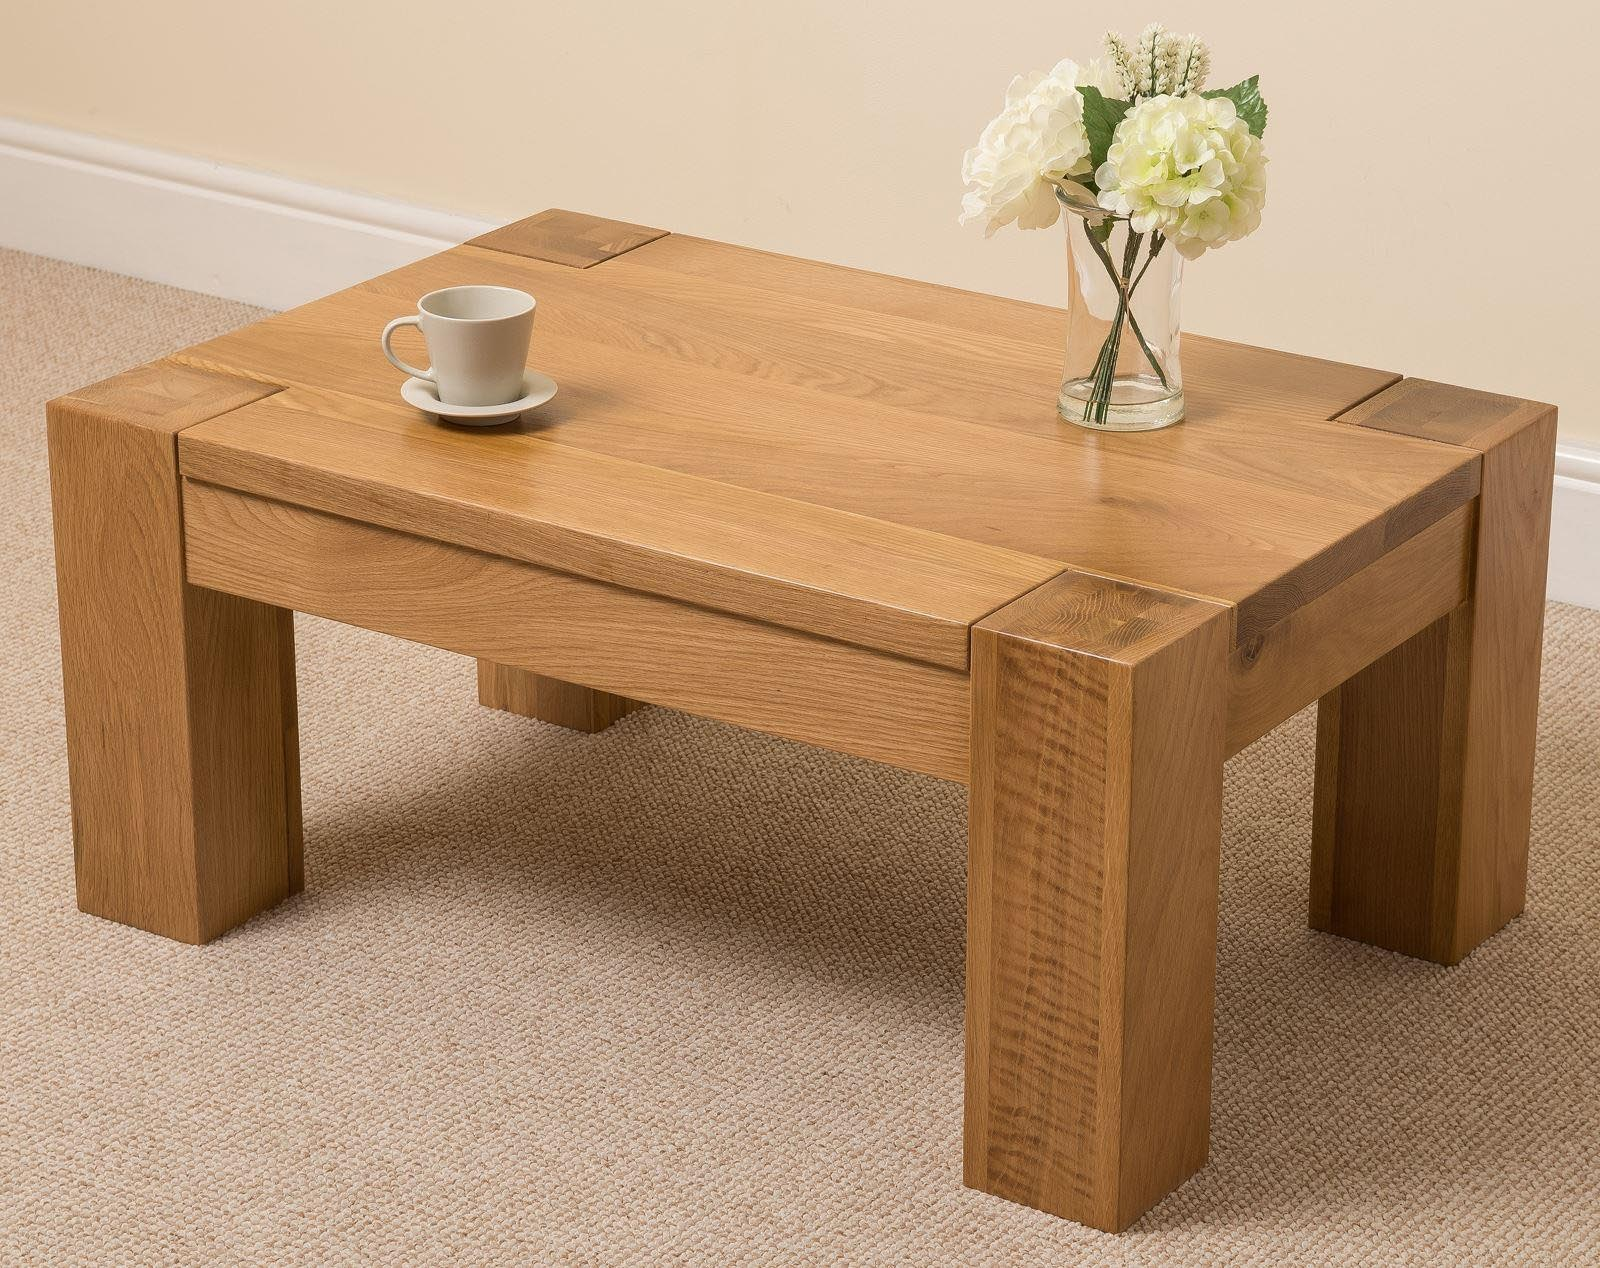 Pine Wood Coffee Table